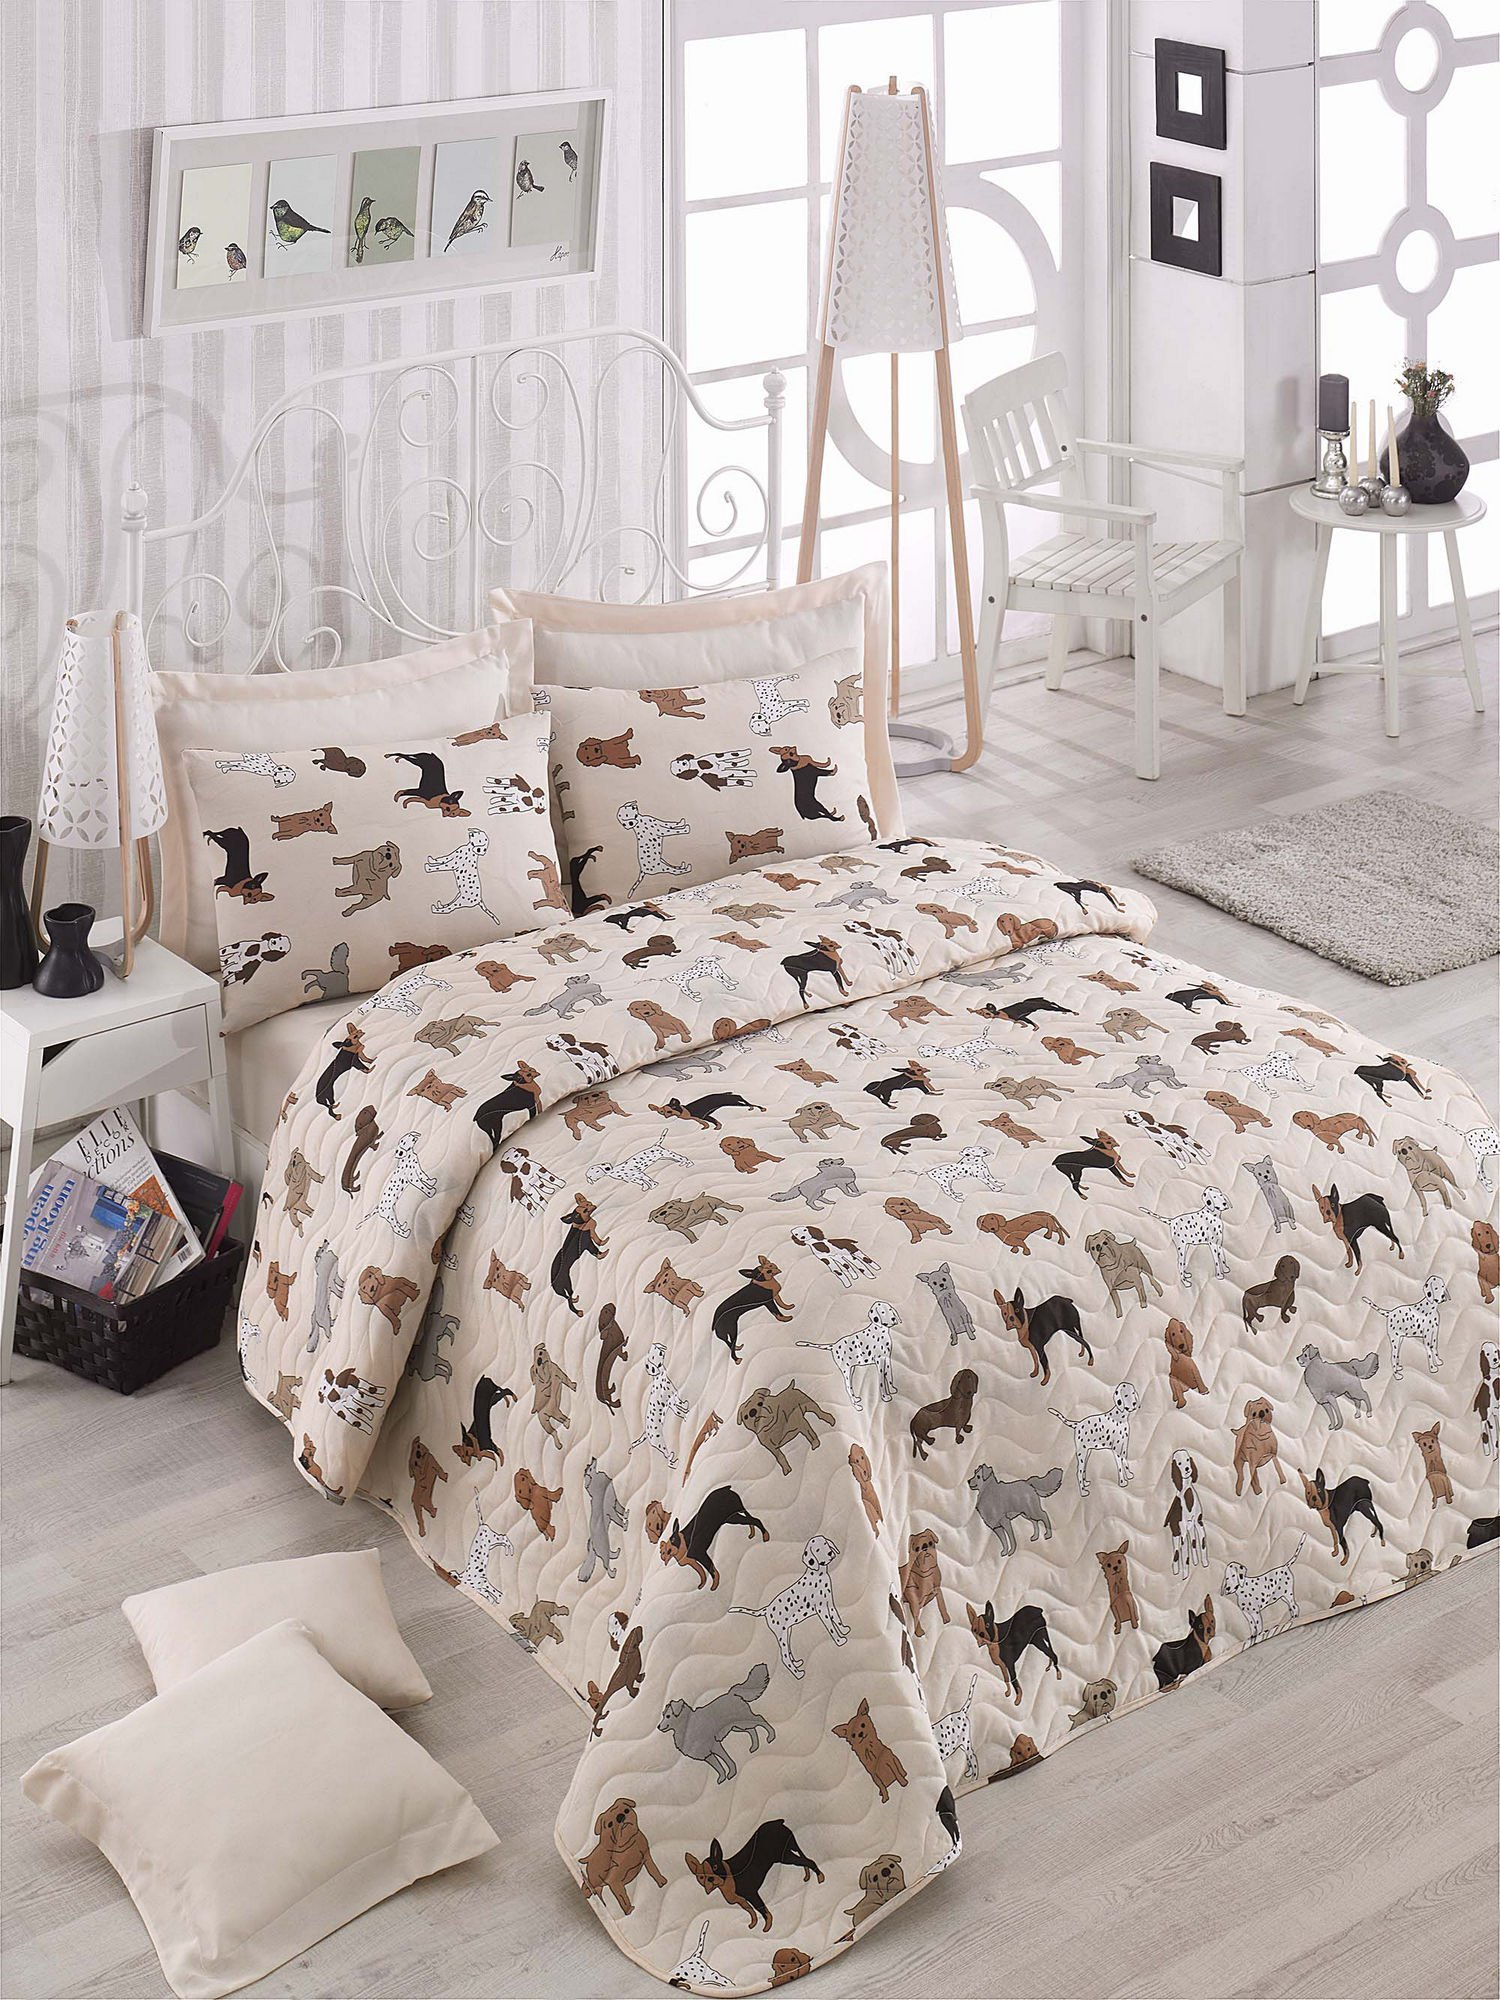 LaModaHome Animals Bedding Set, 65% Cotton 35% Polyester - Dog Breeds, Bulldog, Dalmatian - Set of 3-100% Fiber Filling Coverlet and 2 Pillowcases for Twin Bed